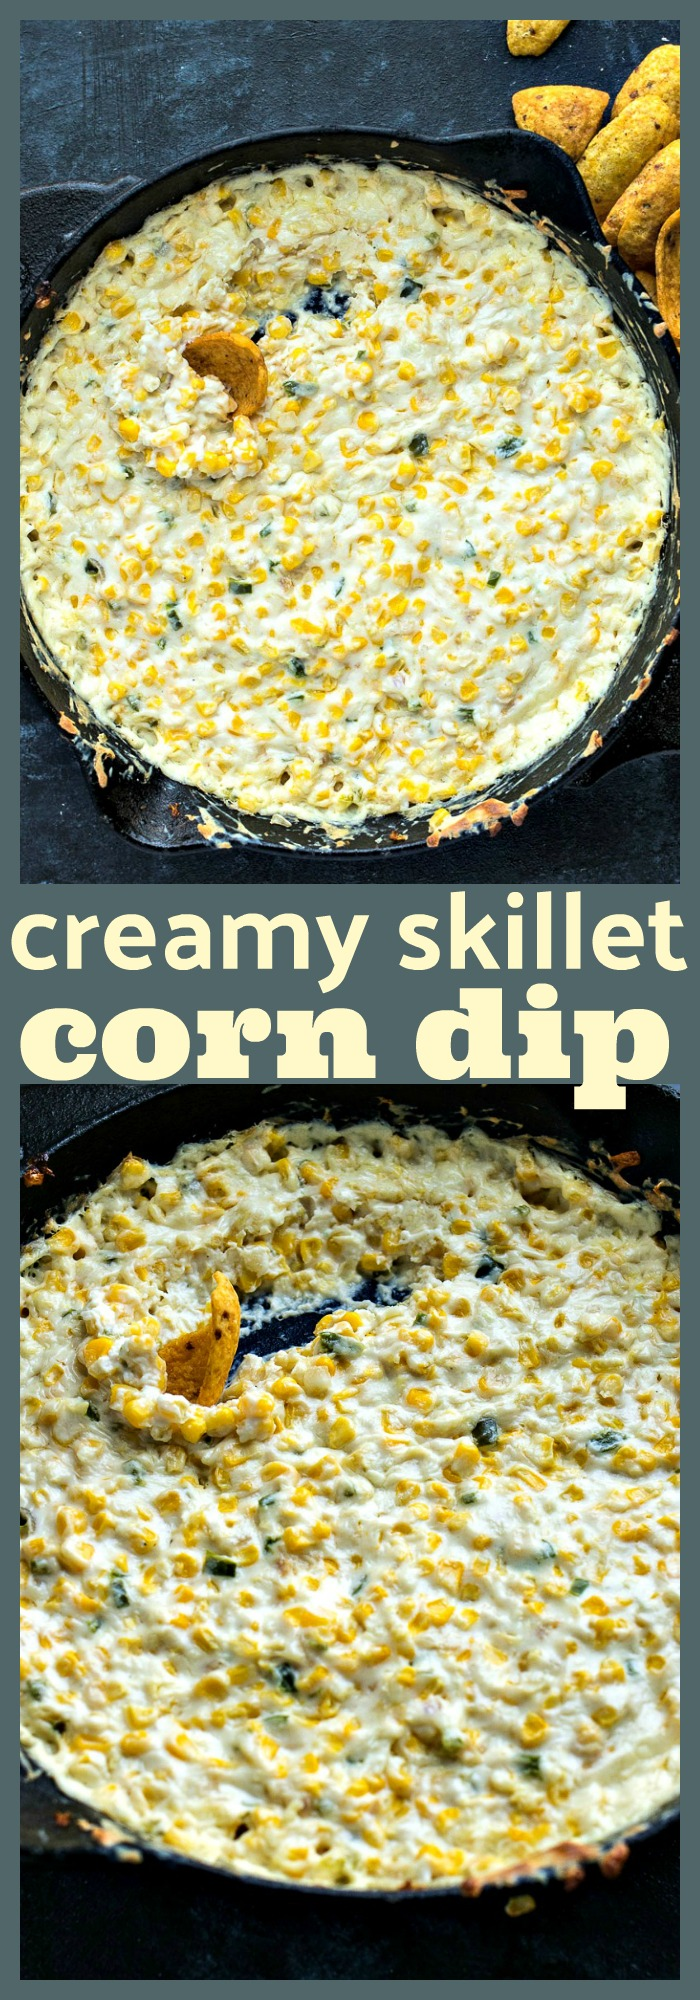 Creamy Skillet Corn Dip photo collage